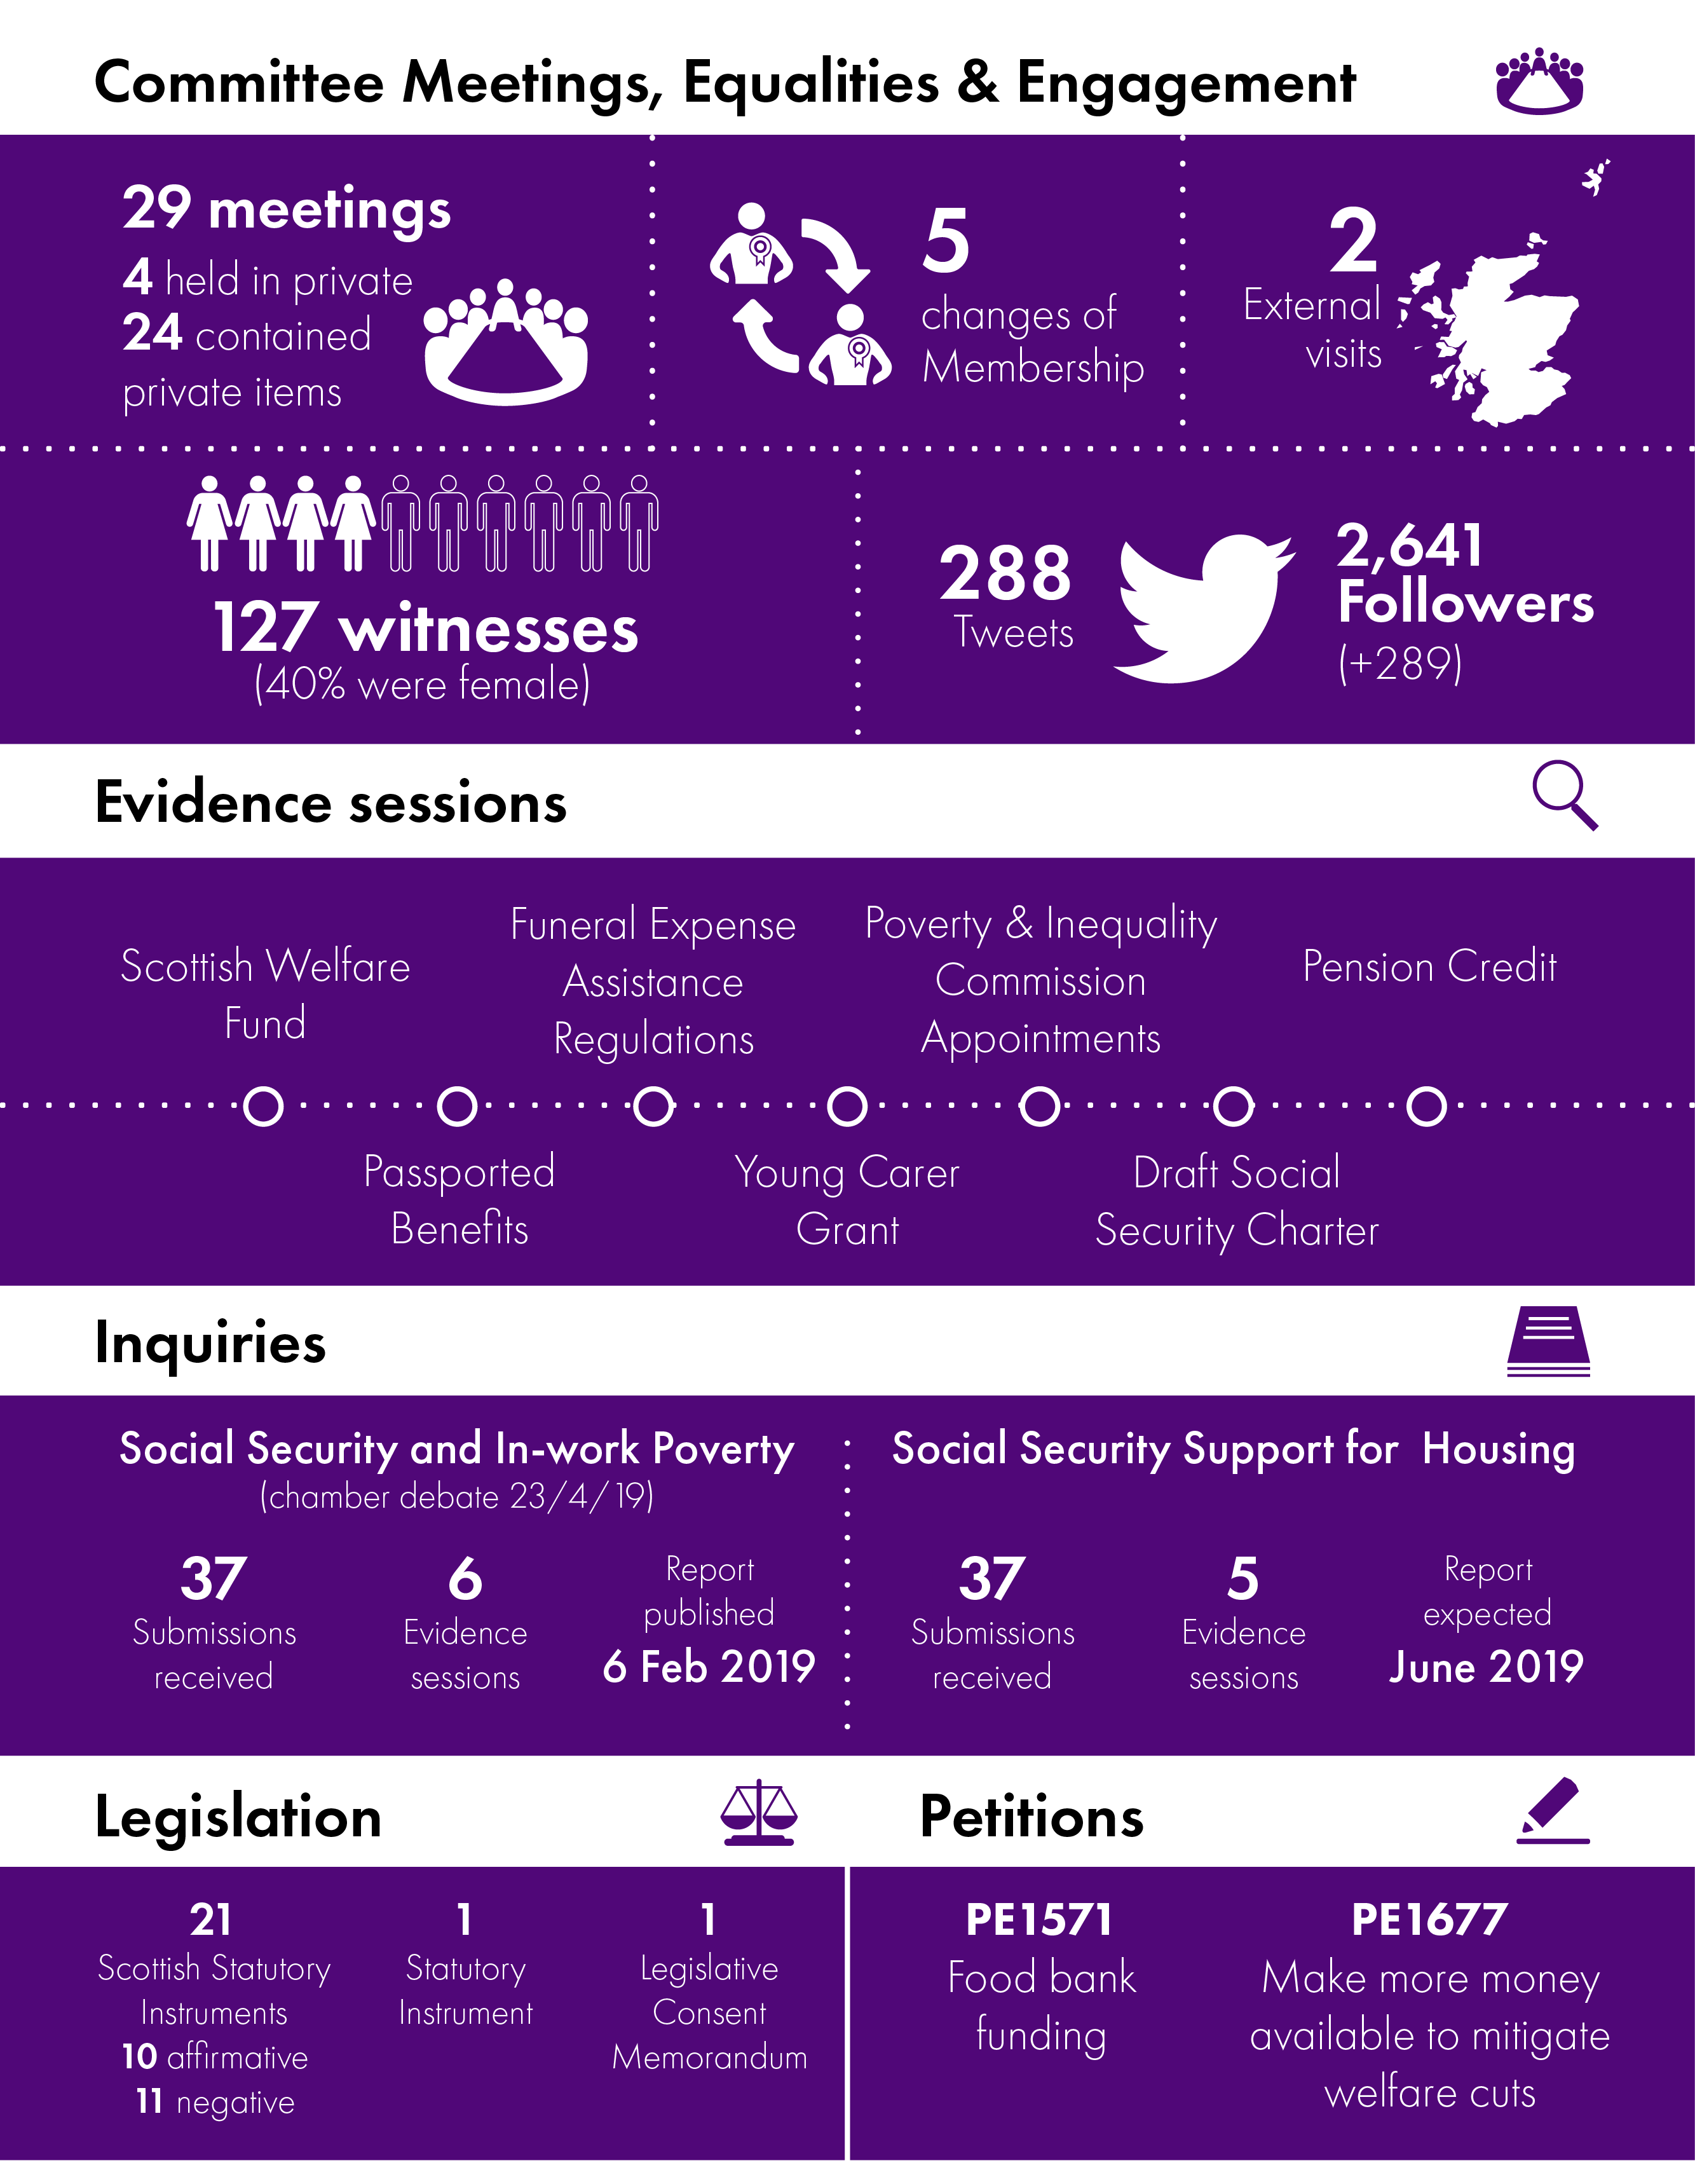 Infographic summarising the work of the Committee from 12 May 2018 to 11 May 2019. The contents of the infographic are detailed in the main report below.